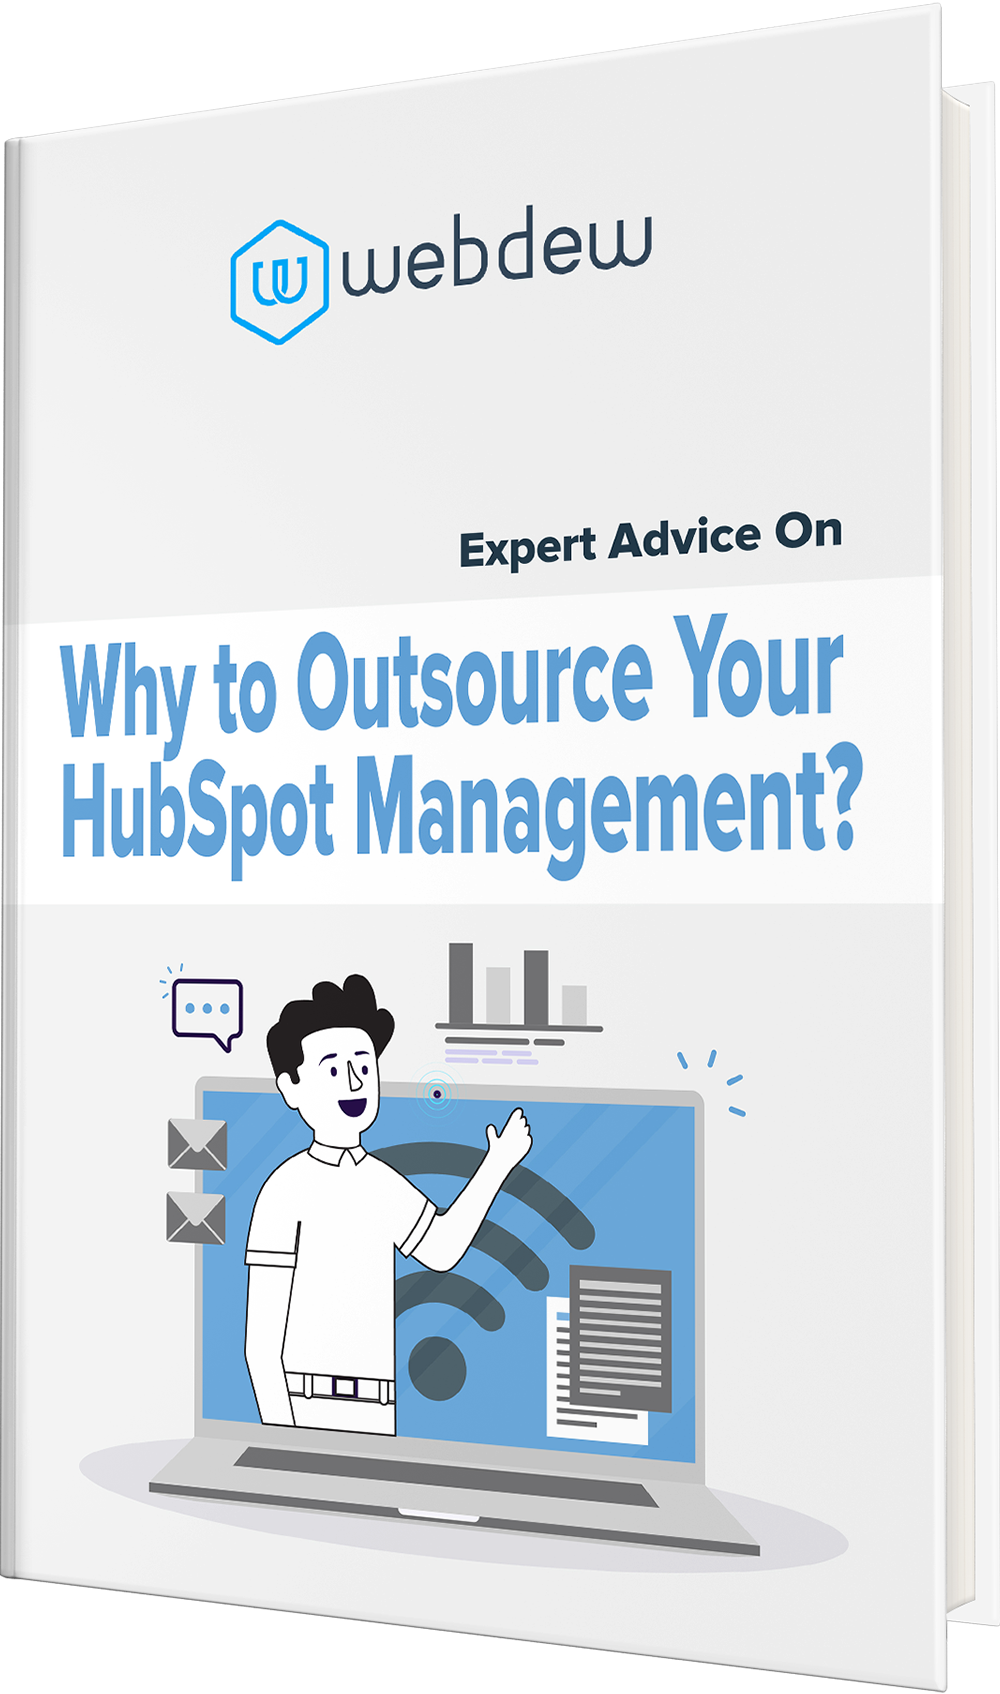 Expert Advice on Why to Outsource Your HubSpot Management